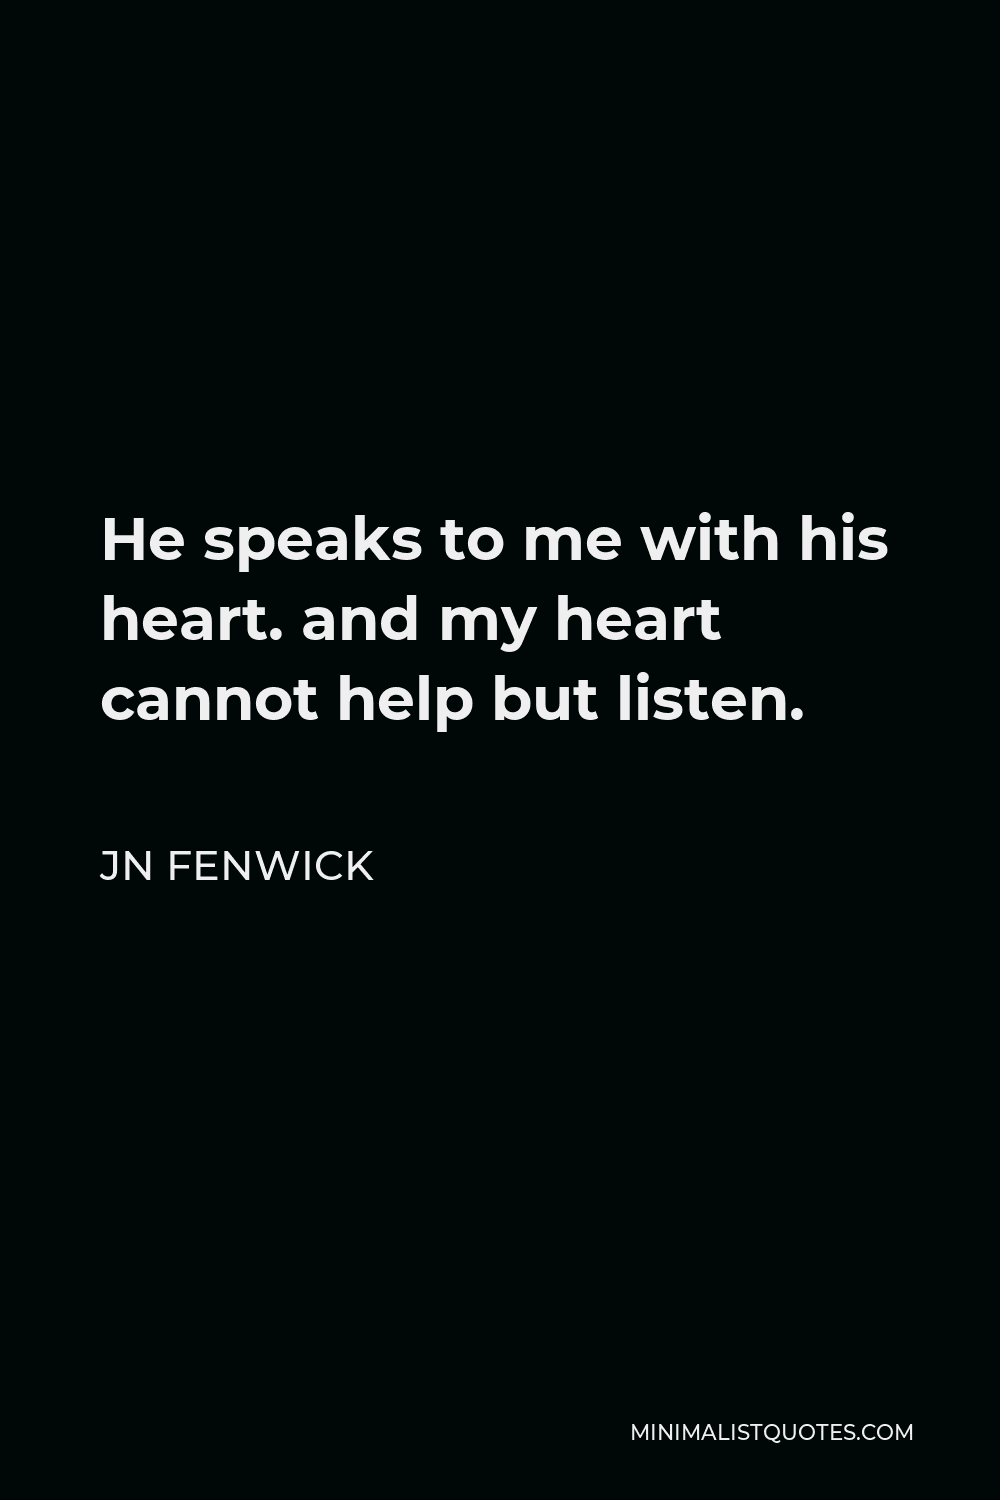 JN Fenwick Quote - He speaks to me with his heart. and my heart cannot help but listen.